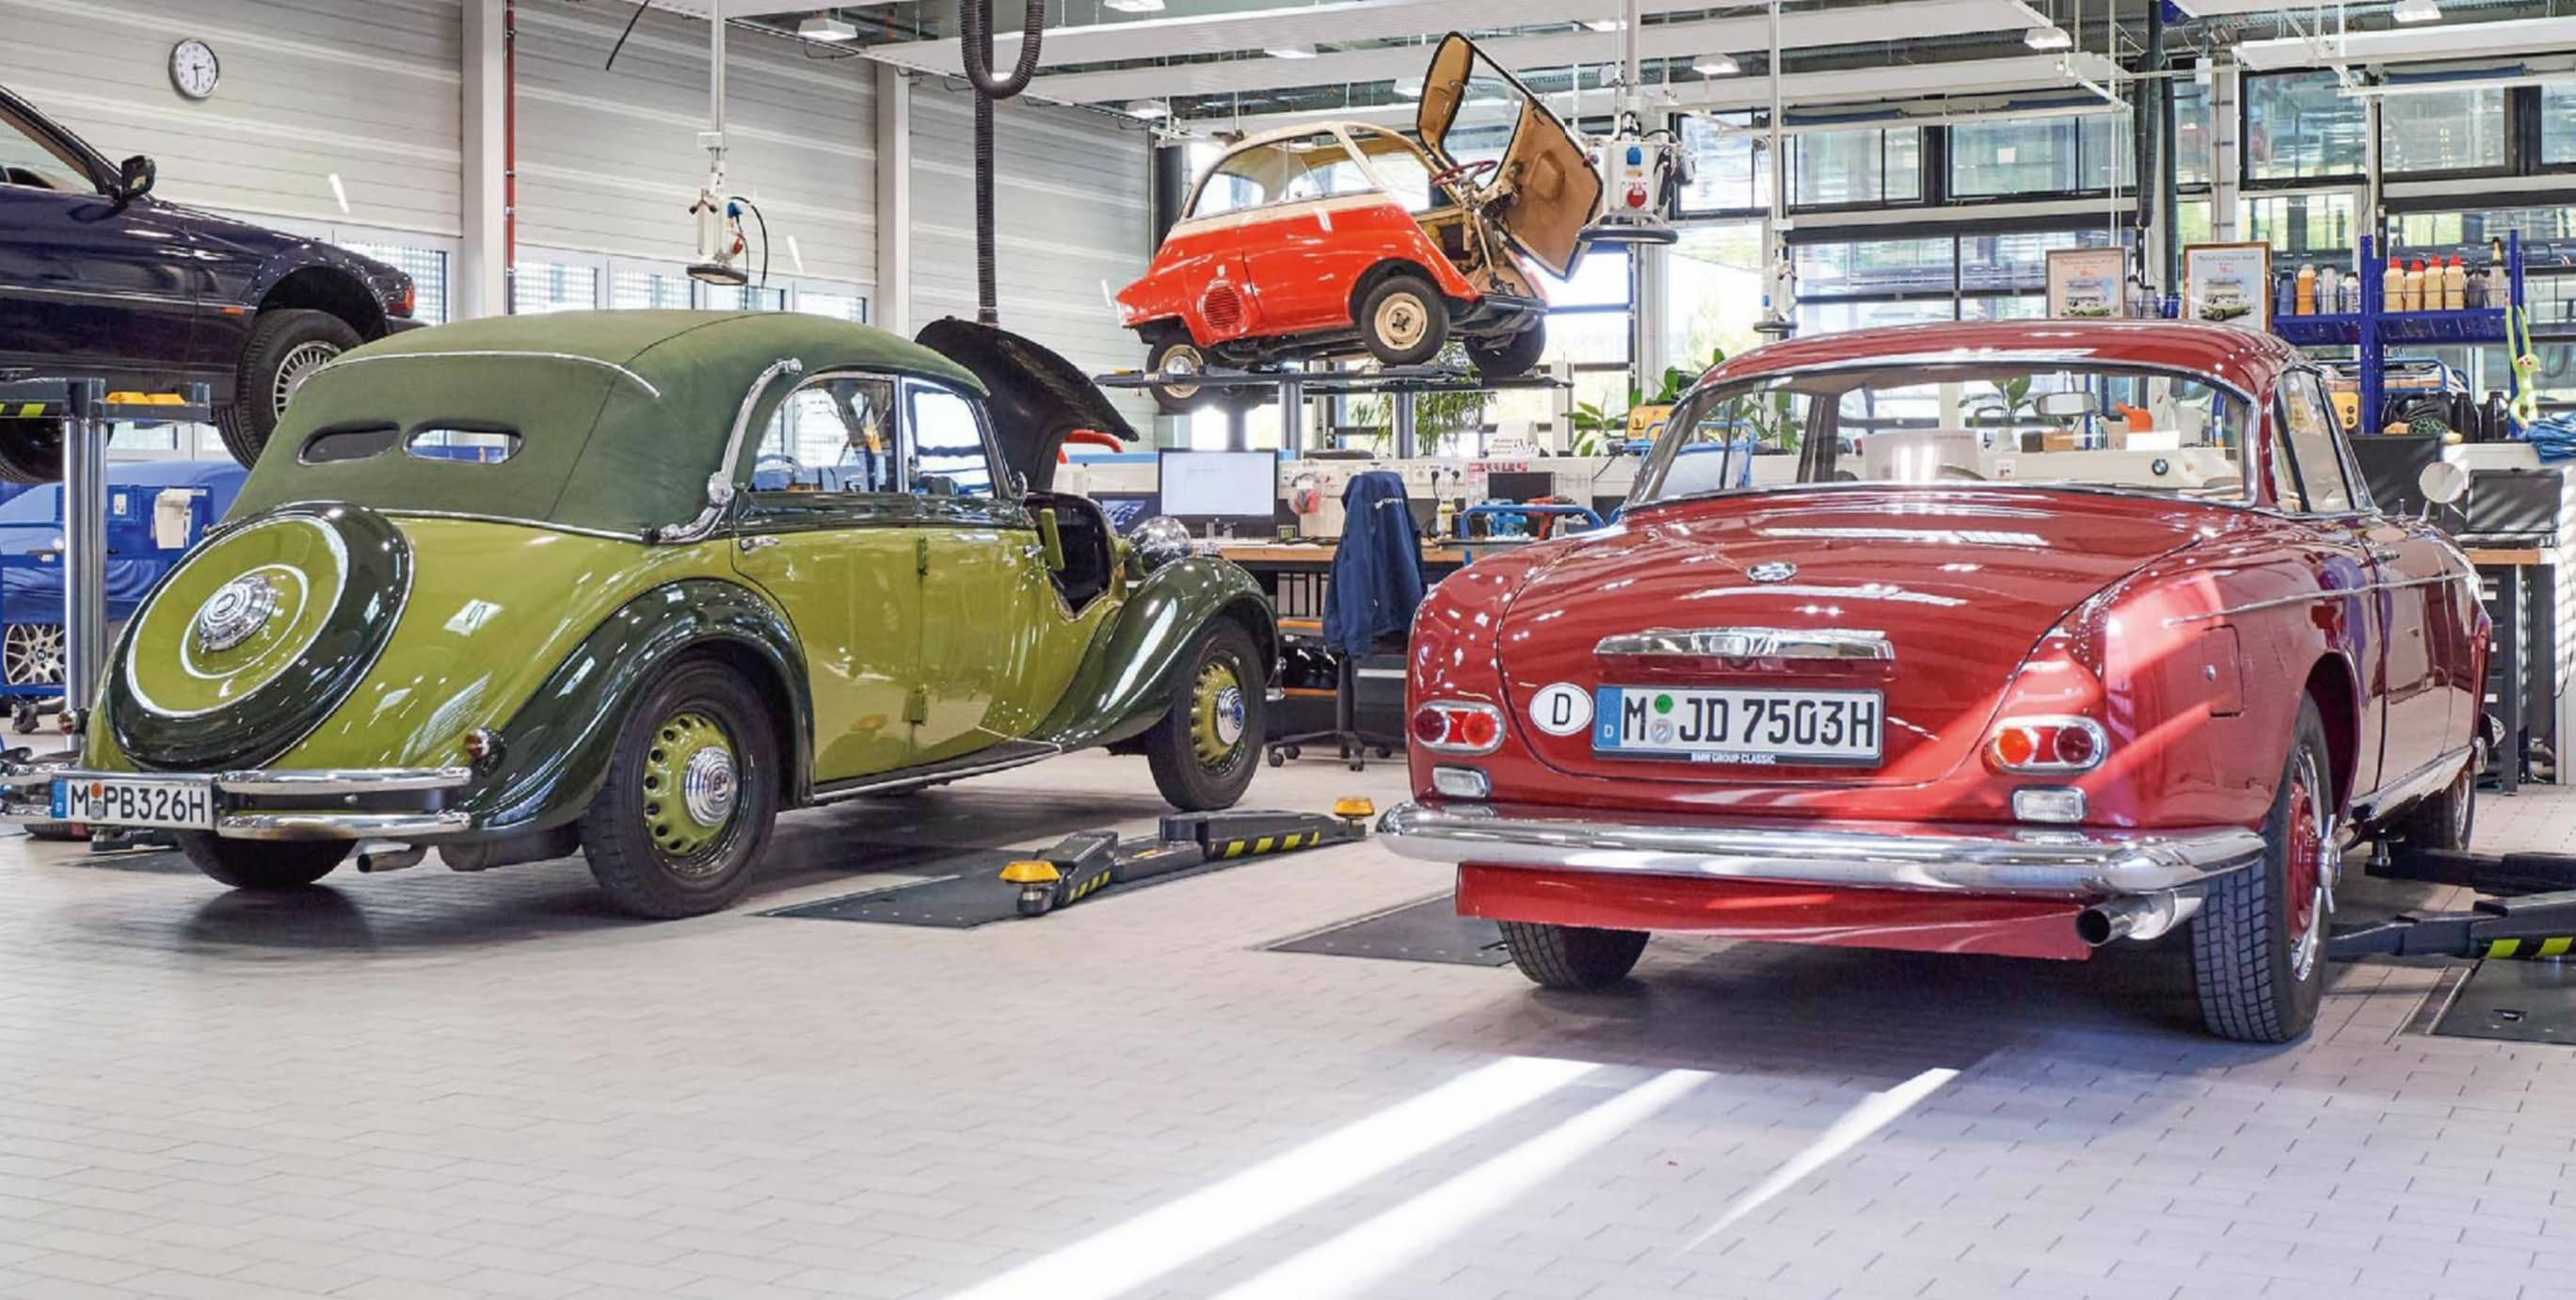 BMW Group Classic - Wunderland